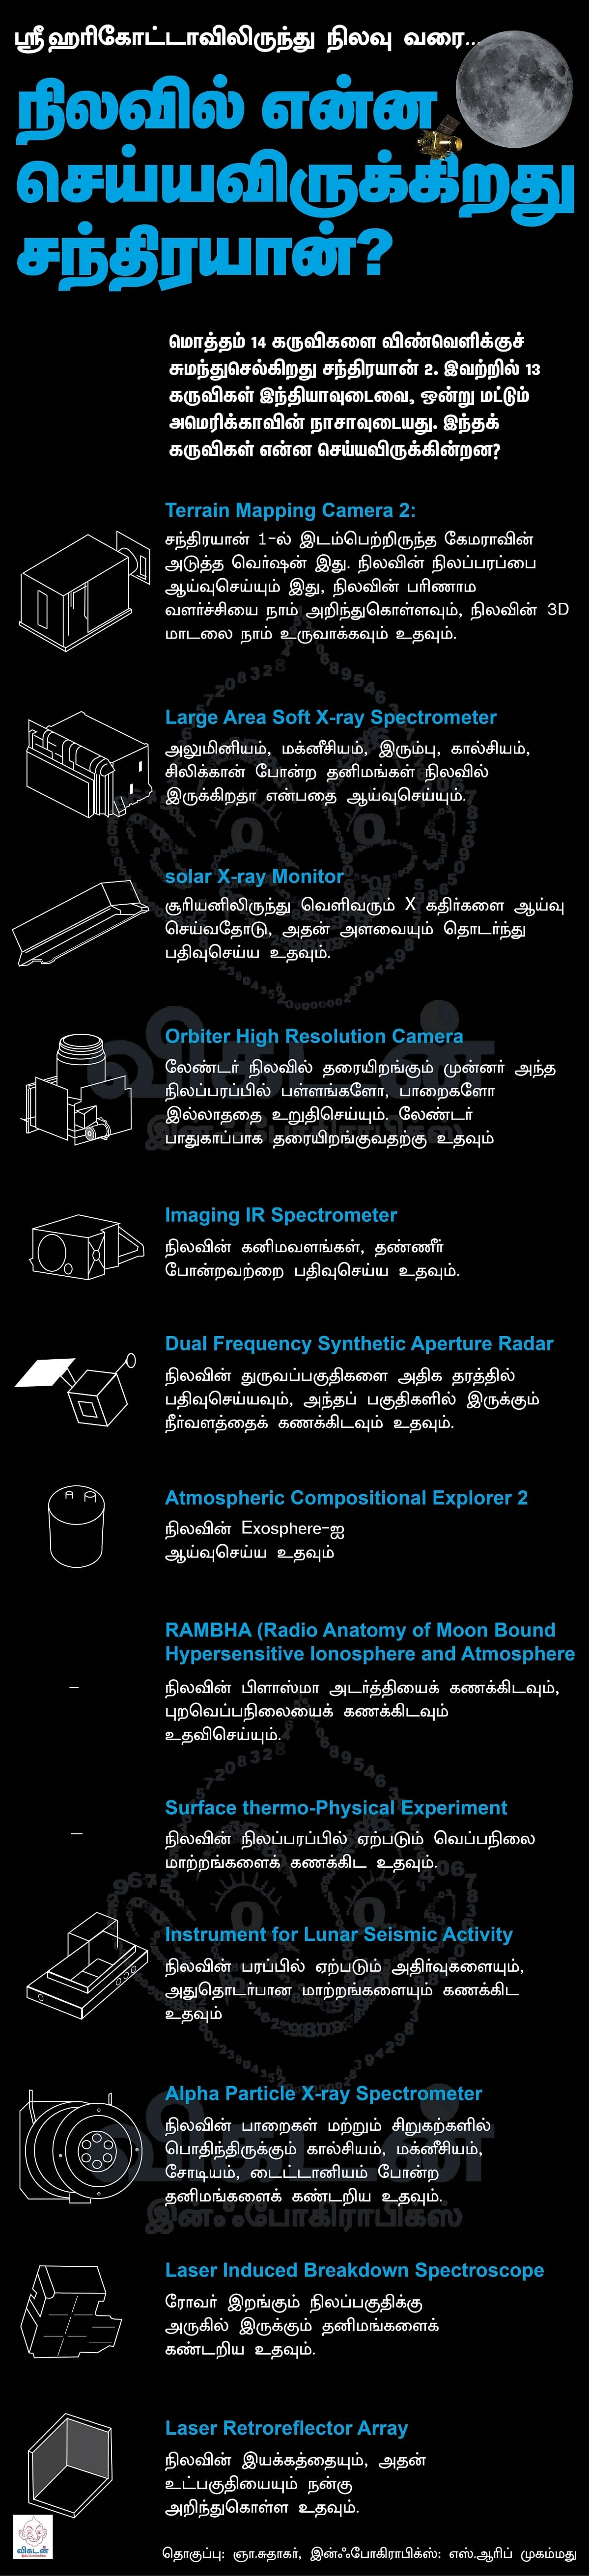 What will Chandrayaan 2 do on Moon?